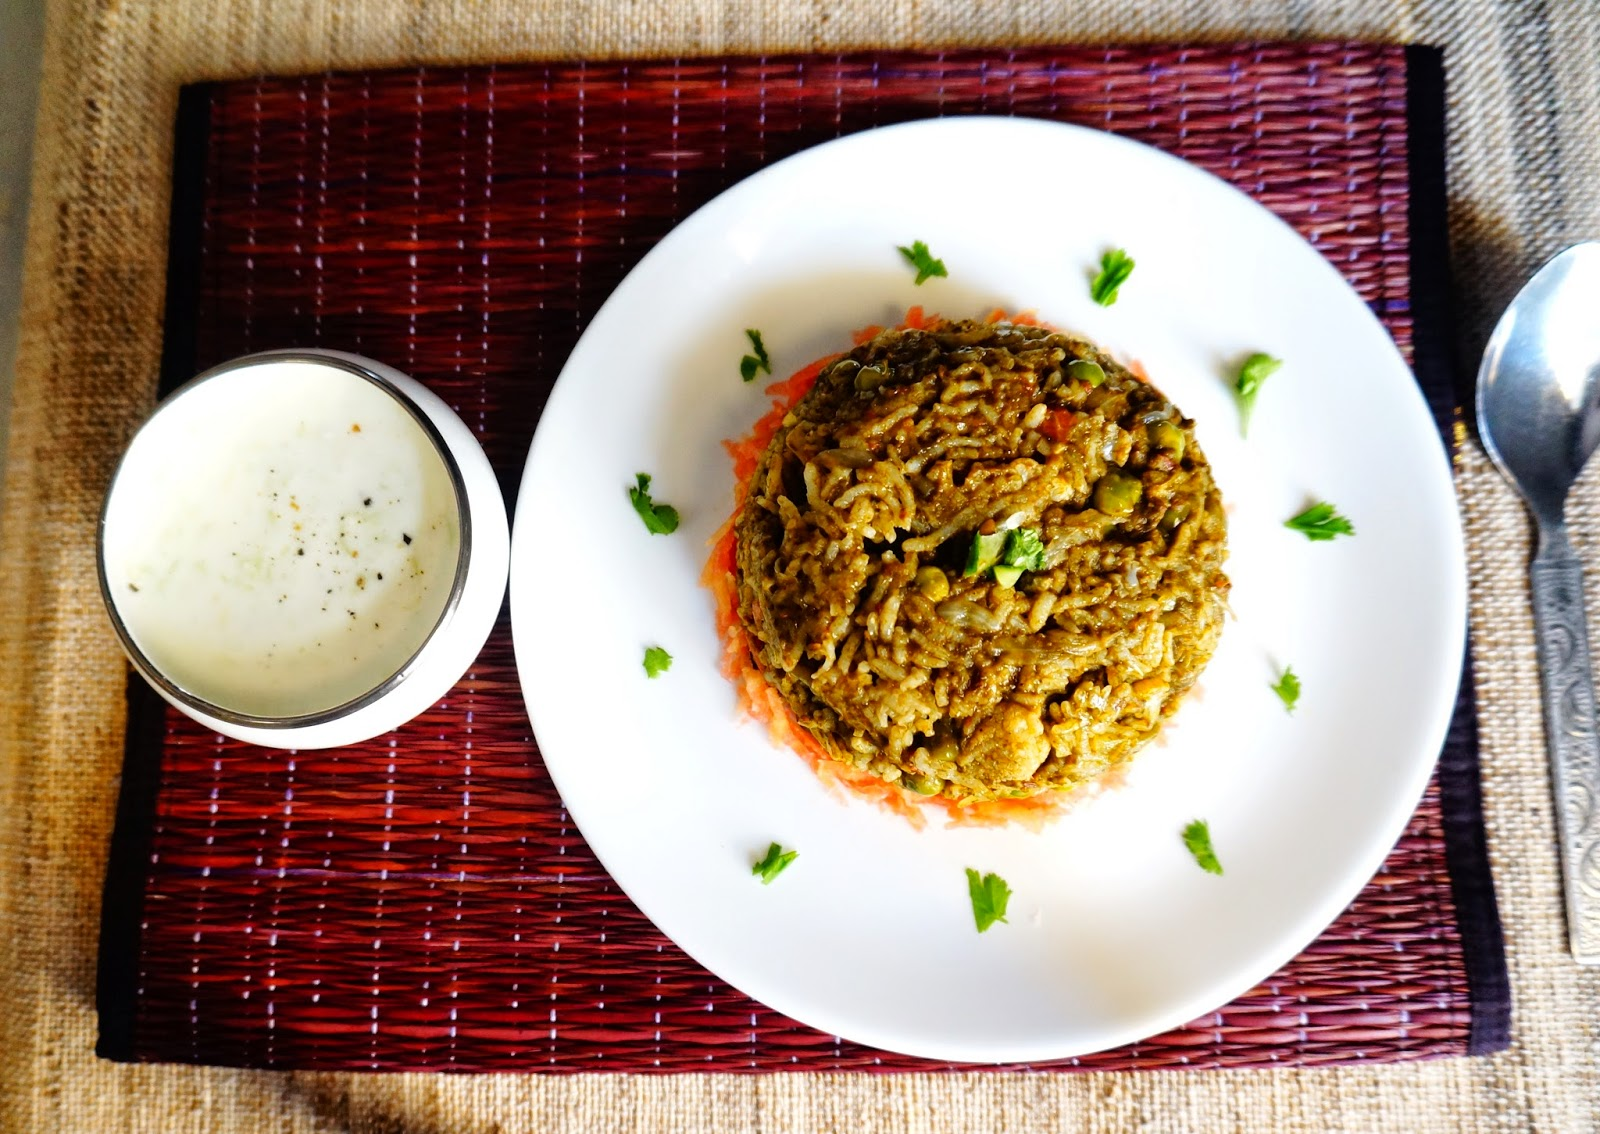 Spinach rice,spinach biryani,palak rice,Indian, healthy recipe,vegetable rice